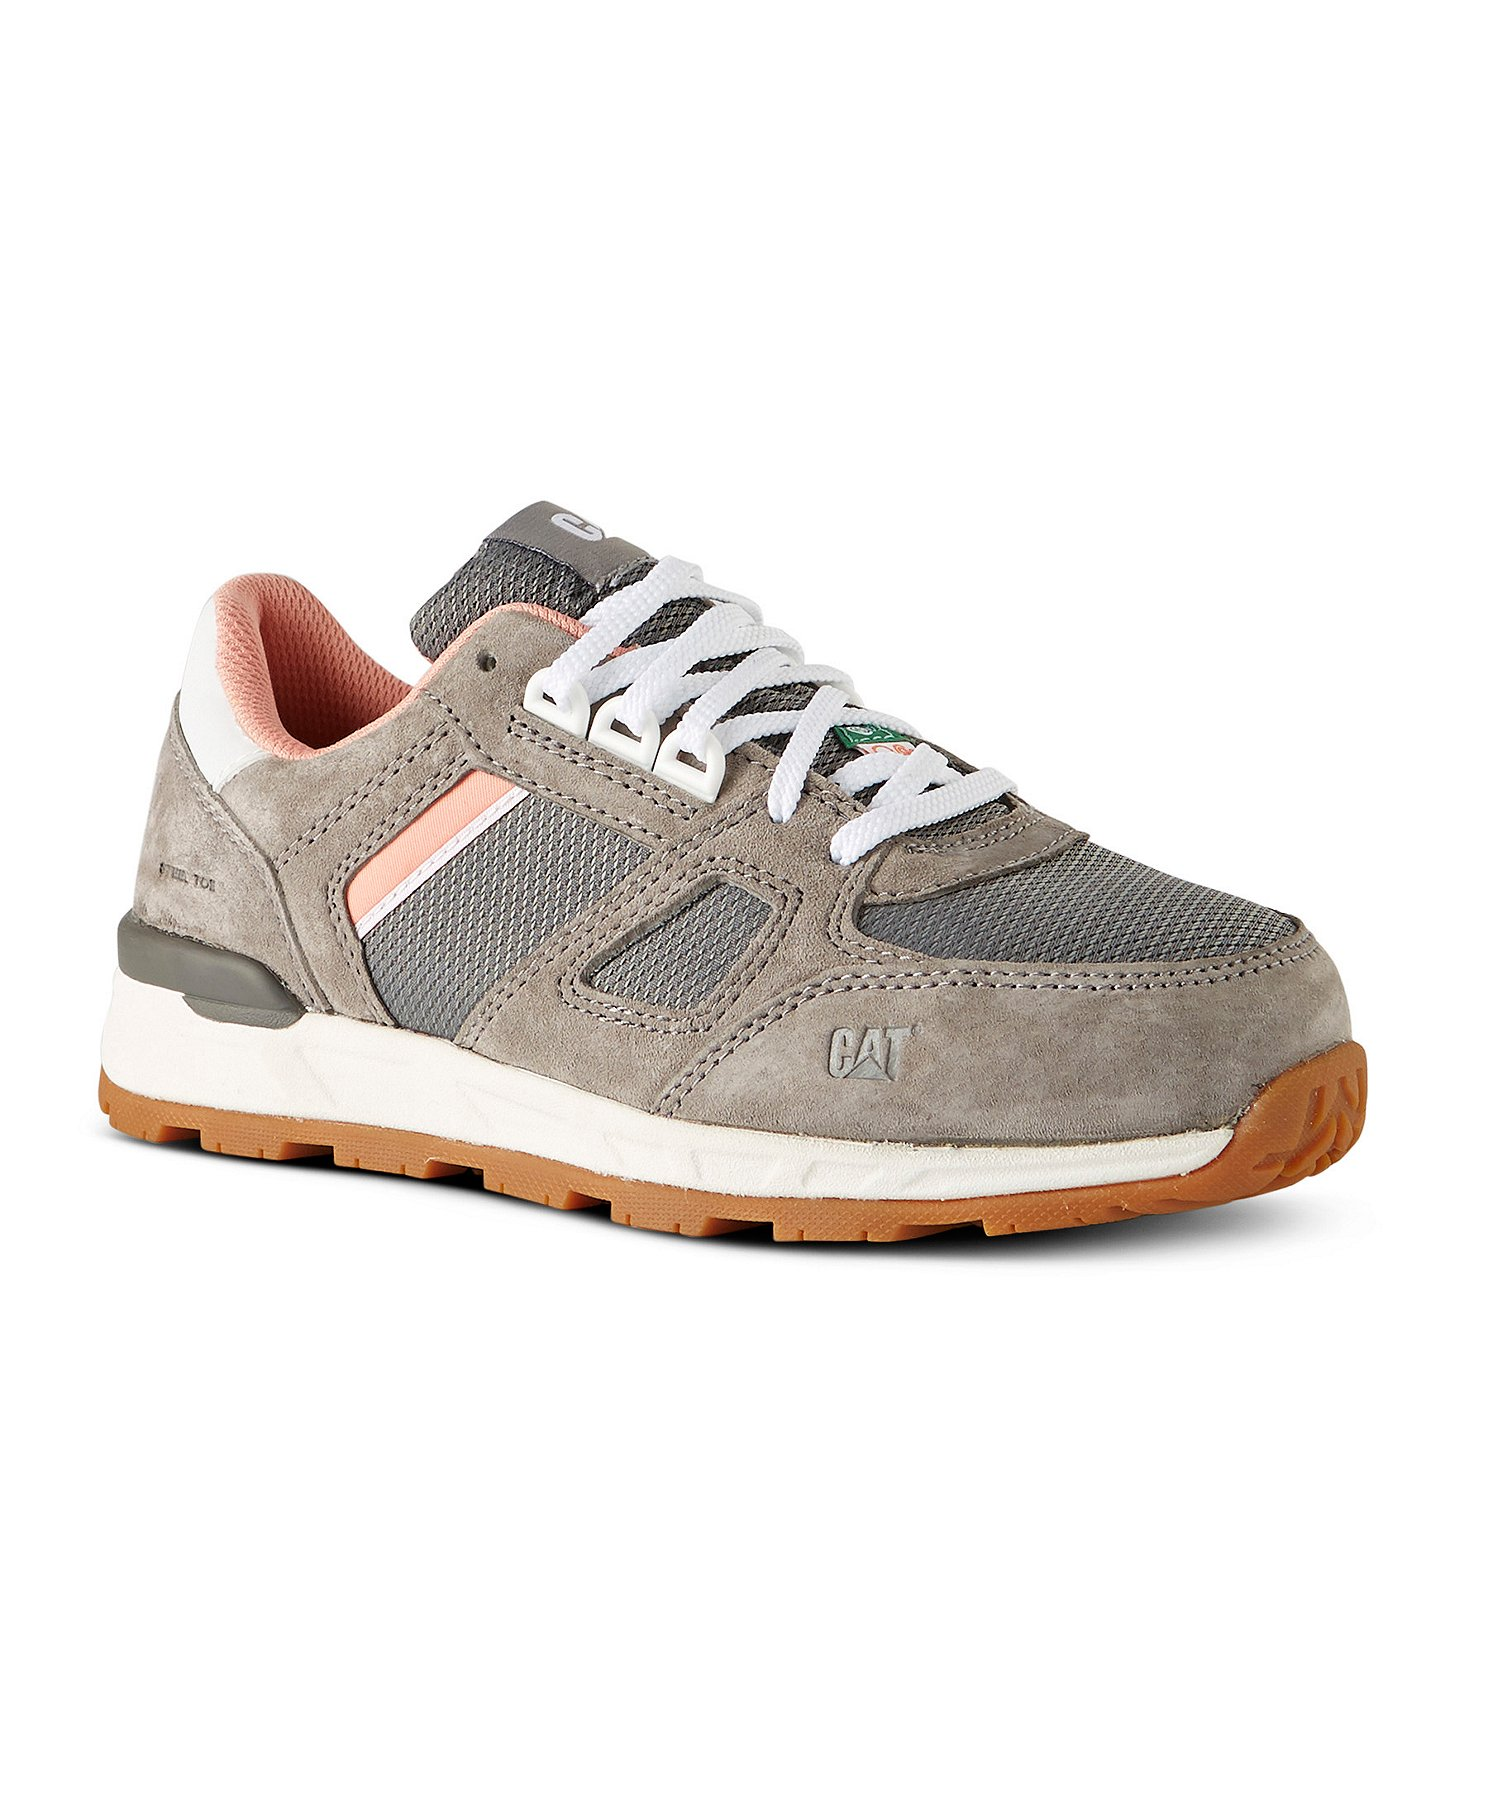 Women's Woodward Steel Toe Steel Plate Athletic Safety Shoes | L'Équipeur